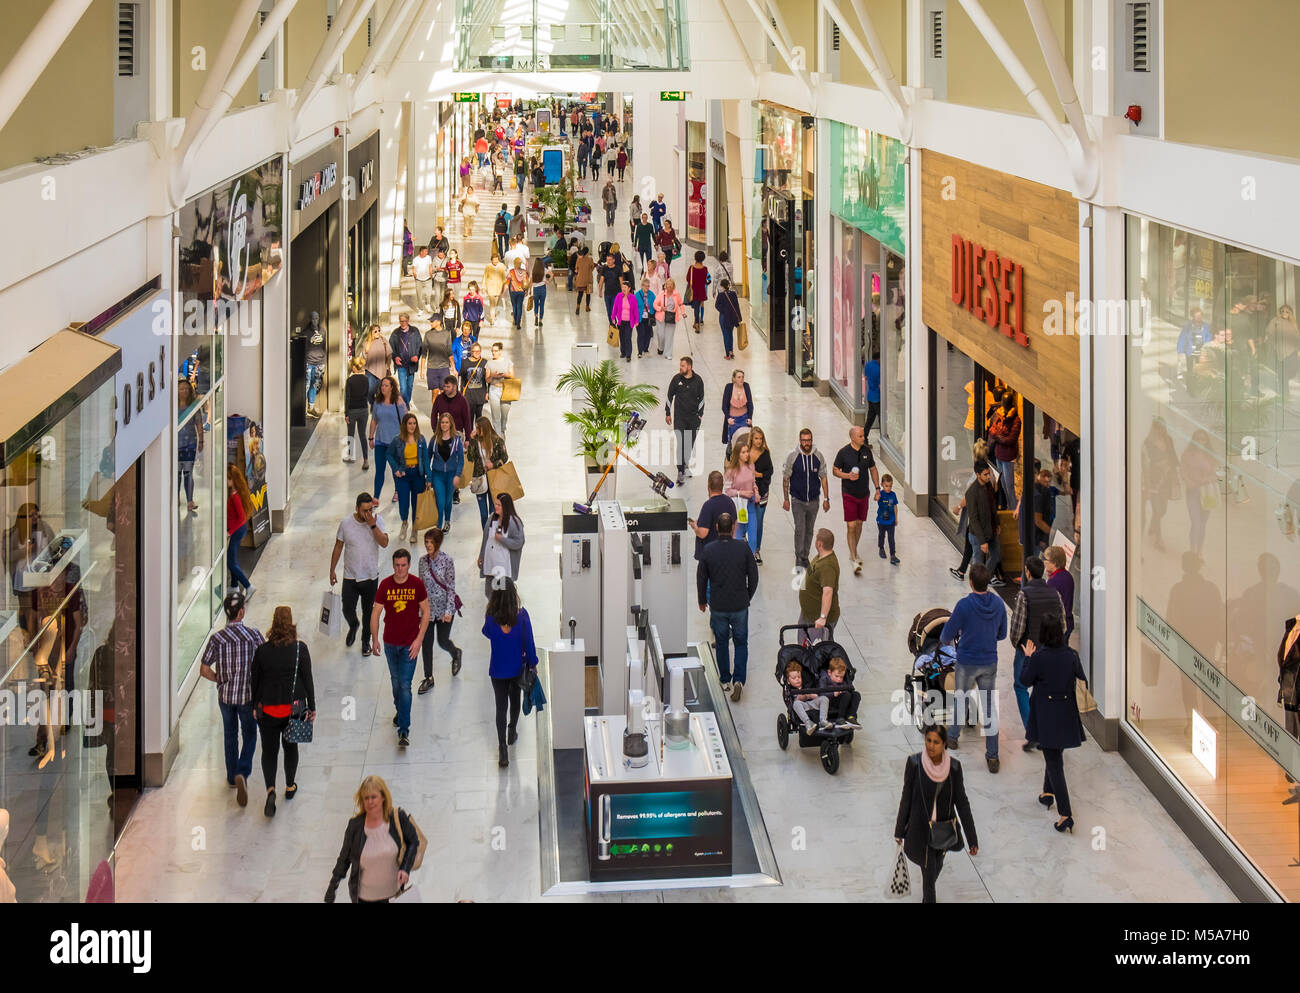 Liffey Valley Shopping Mall / Centre, outside Dublin, Ireland busy with shoppers - Stock Image